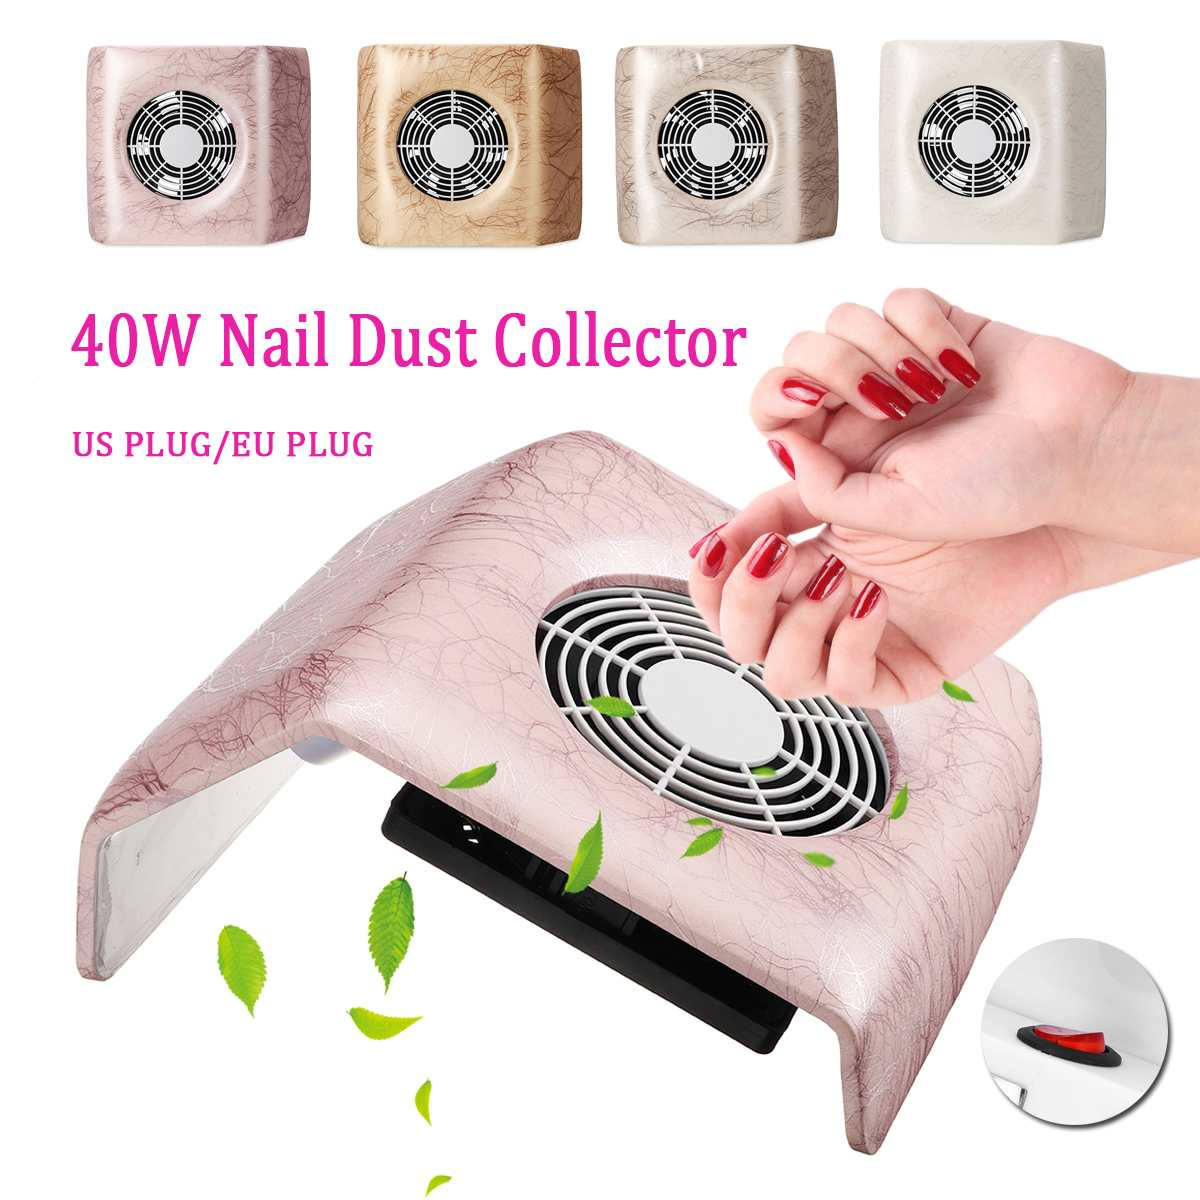 40W Nail Dust Collector Manicure Set Machine UV Gel Nail Polish Cleaner Manicure Tools Vacuum Cleaner For Nail Art Dust Cleaner40W Nail Dust Collector Manicure Set Machine UV Gel Nail Polish Cleaner Manicure Tools Vacuum Cleaner For Nail Art Dust Cleaner